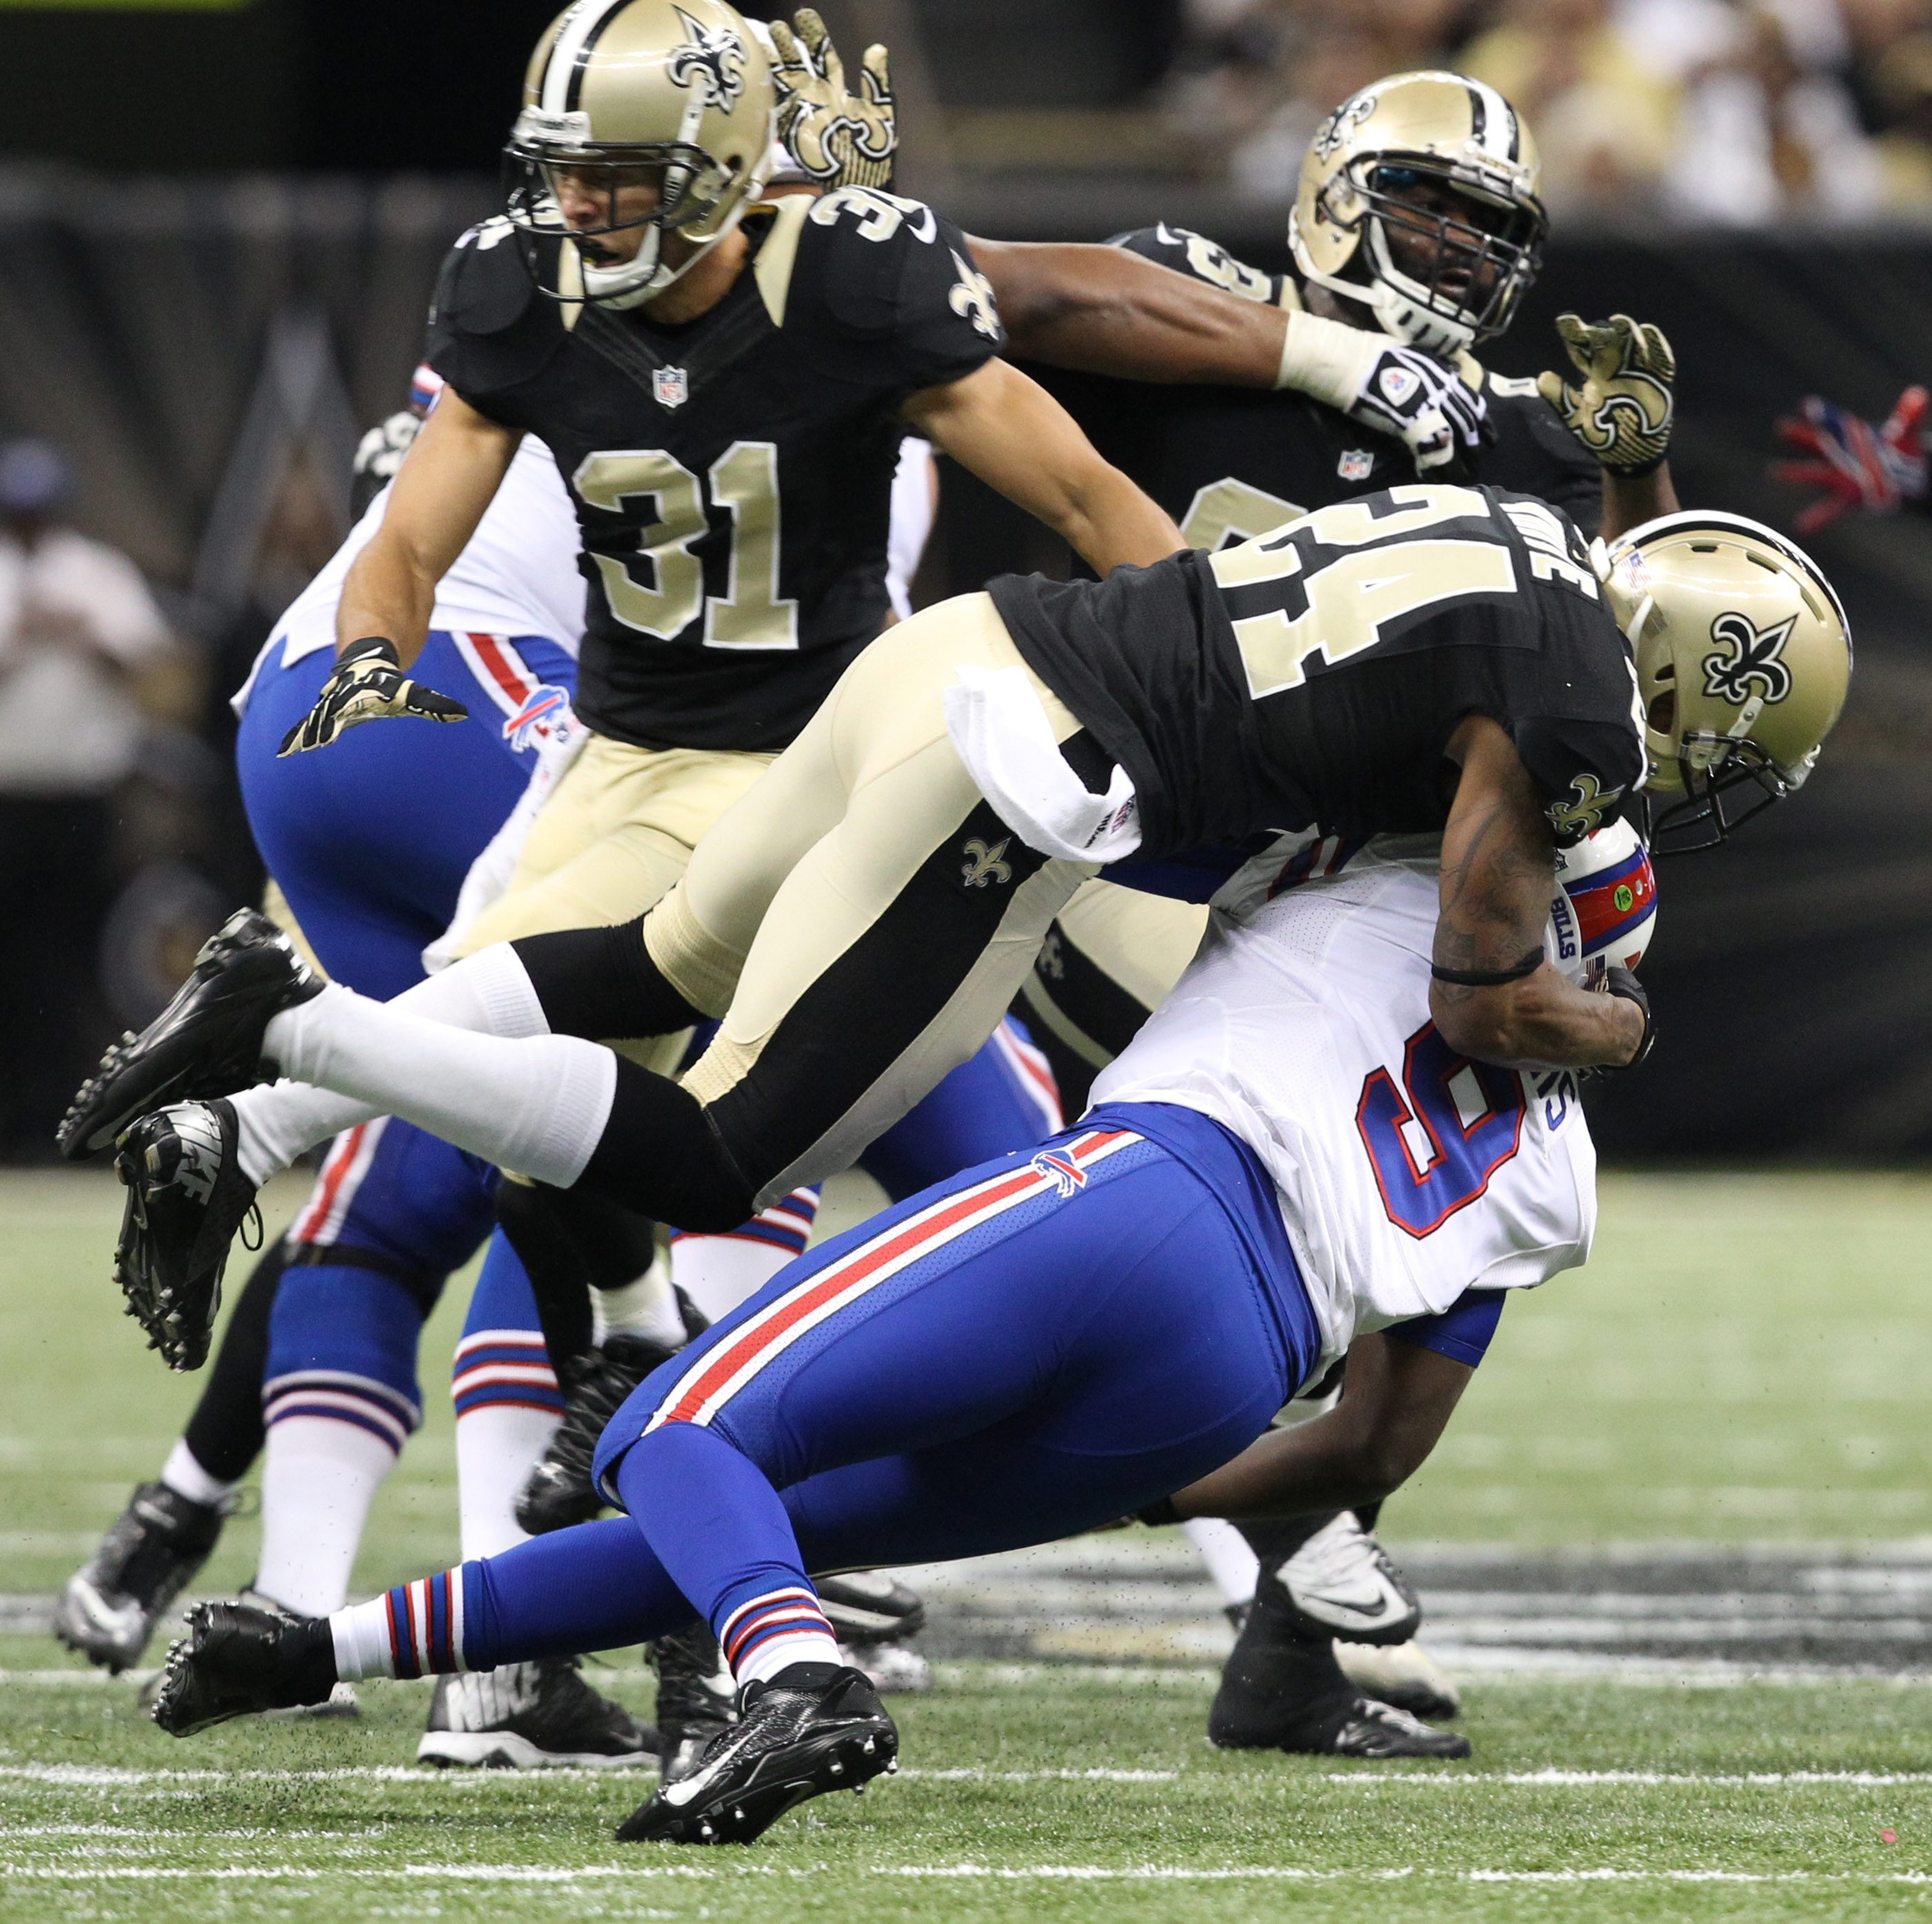 Bills quarterback Thad Lewis is hammered and forced to throw an incomplete pass by Saints cornerback Corey White in the third quarter Sunday.